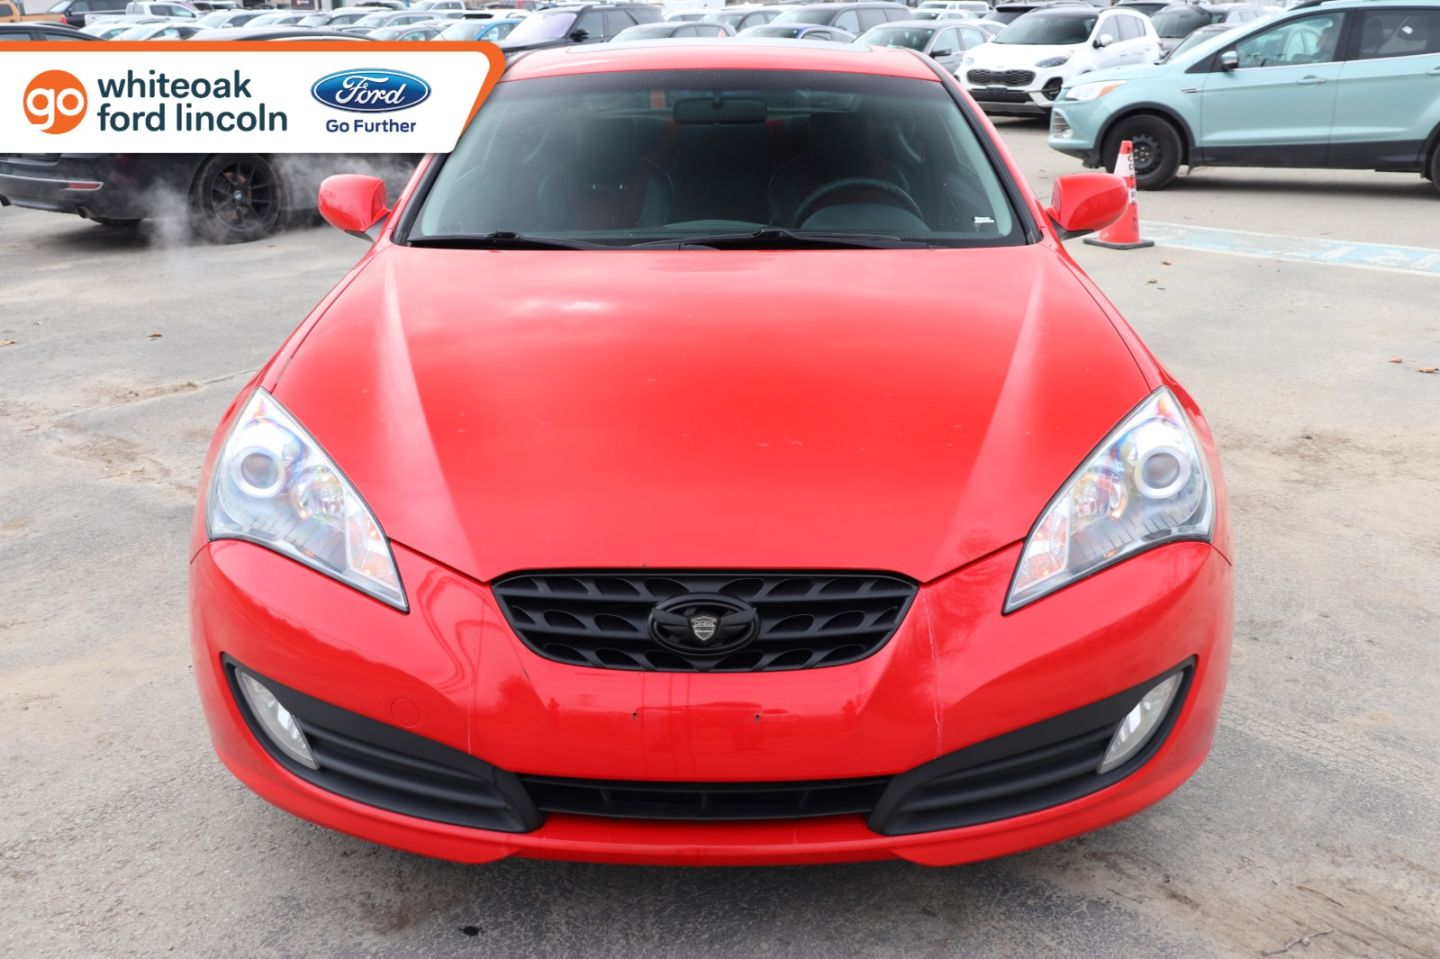 2011 Hyundai Genesis Coupe GT for sale in Mississauga, Ontario